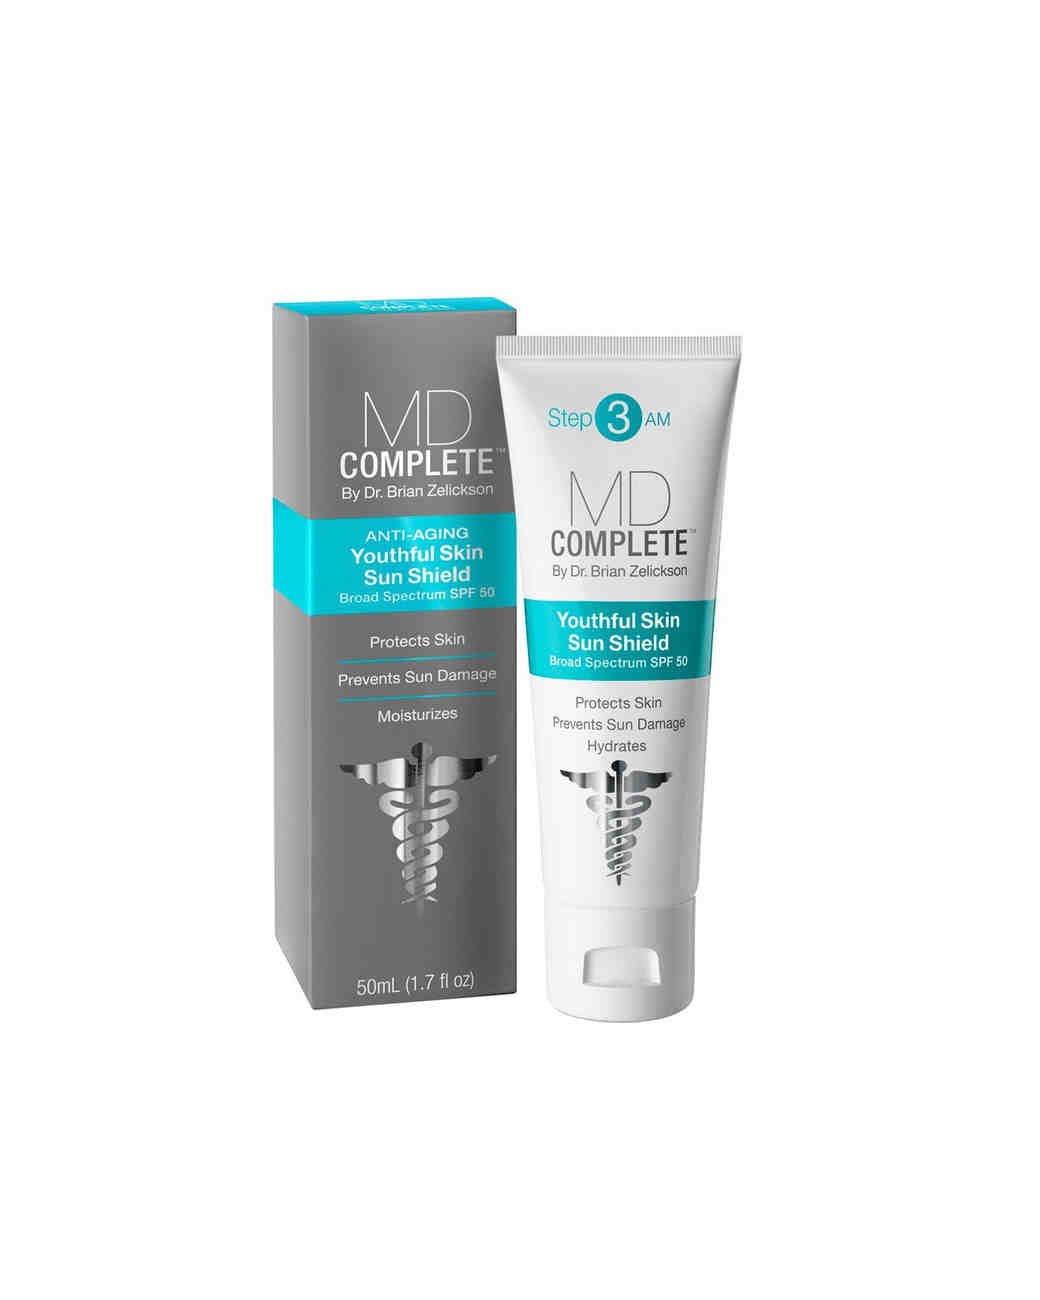 MD Complete Youthful Skin Sun Shielf SPF 50